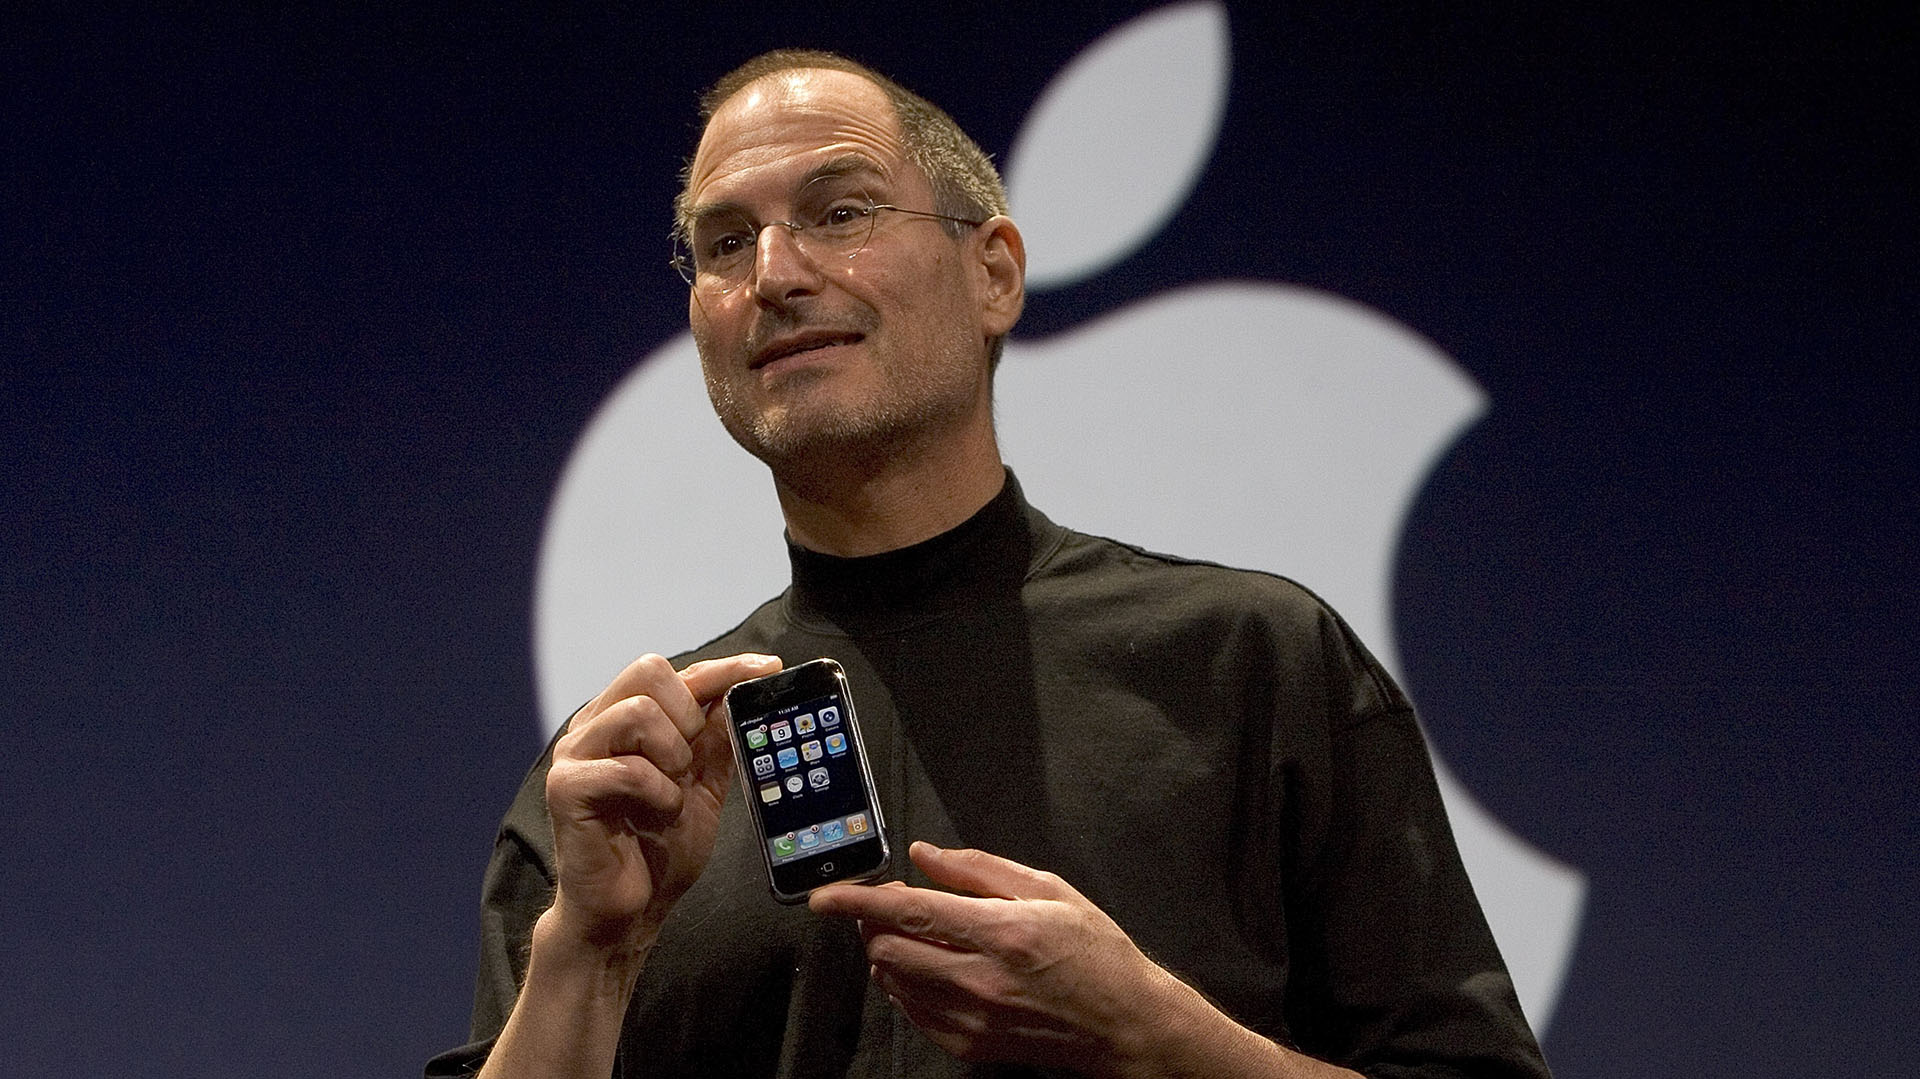 Steve Jobs sosteniendo el primer iPhone que fue presentado en San Francisco el 9 de enero de 2007 y lanzado al mercado el 29 de junio de ese mismo año. (Photo by David Paul Morris/Getty Images)